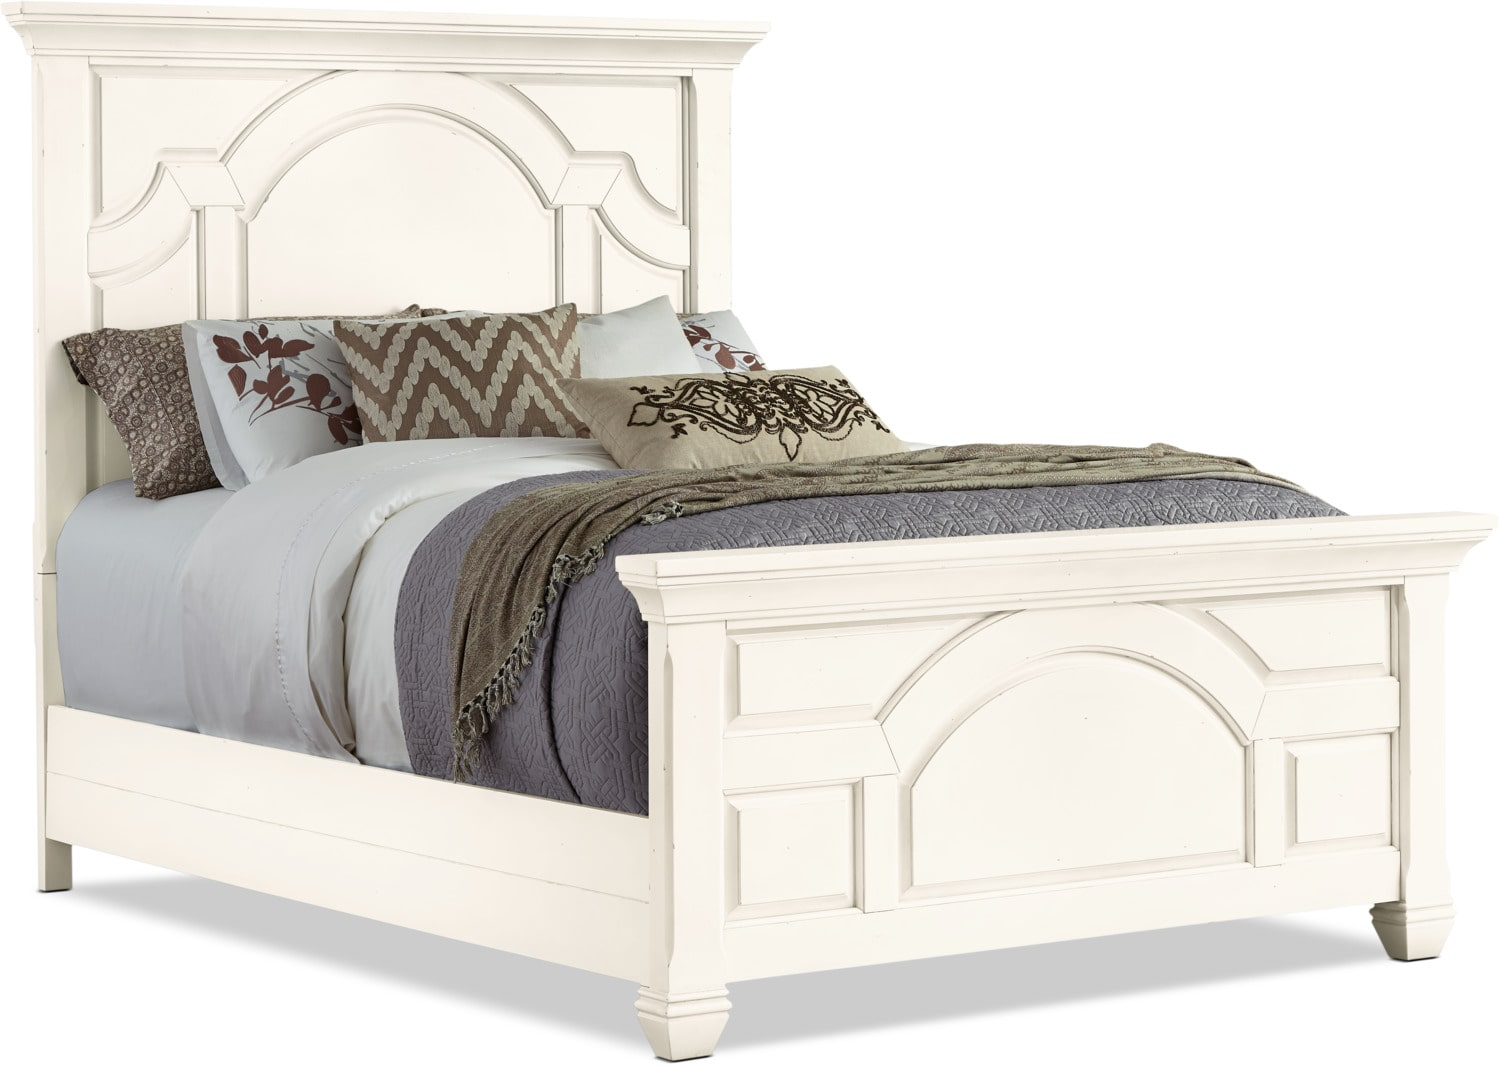 Bedroom Furniture - Hancock Park King Bed